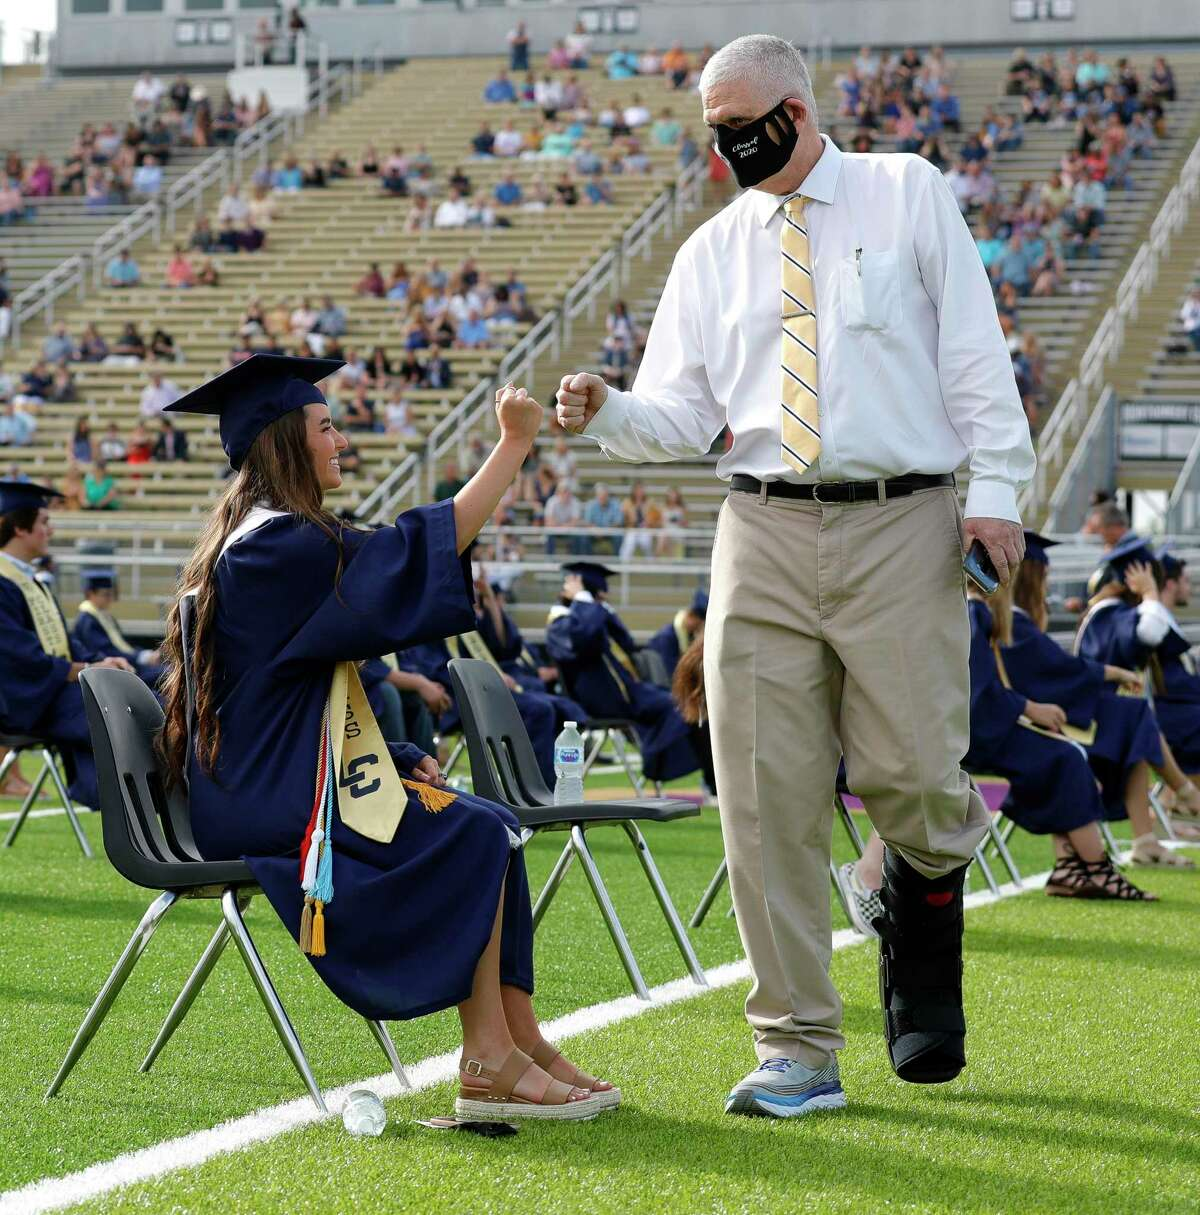 Lake Creek Principal Phil Eaton, right, gives a fist-bump to Reagan Cole before a graduation ceremony for Lake Creek High School at MISD Stadium, Thursday, June 4, 2020, in Montgomery. Eaton contracted and surived COVID-19 after a 51-day battle with the virus. The 220 students in the school's inaugural graduating class attended the outdoor ceremony with social distancing and other safety guidelines.